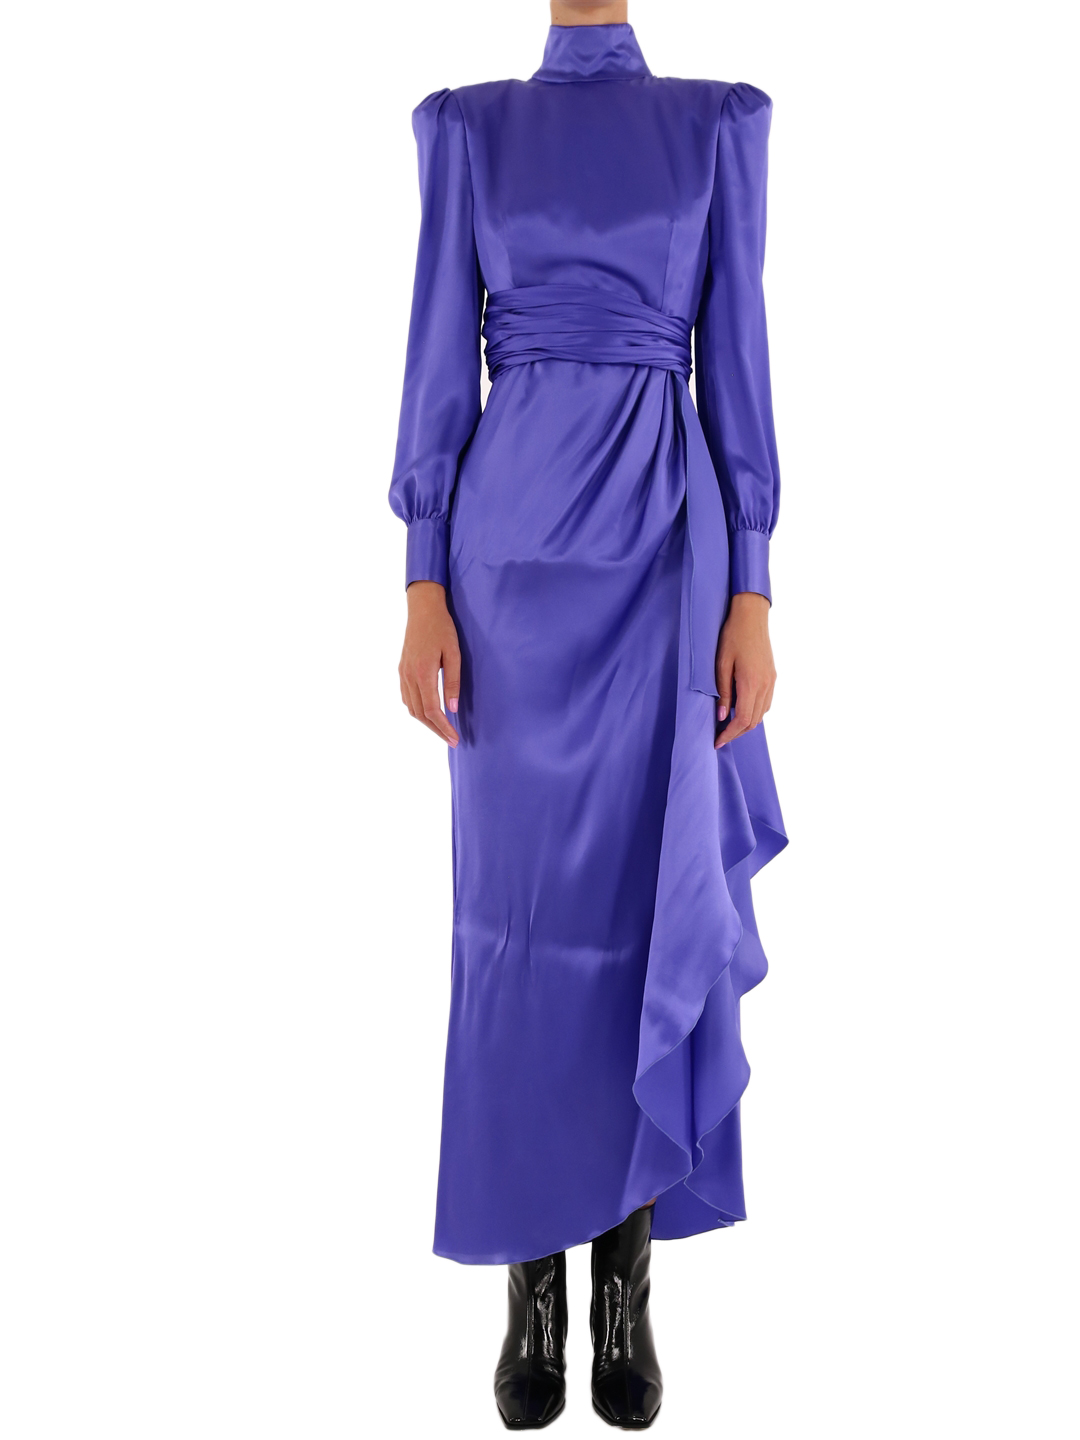 Silk dress purple